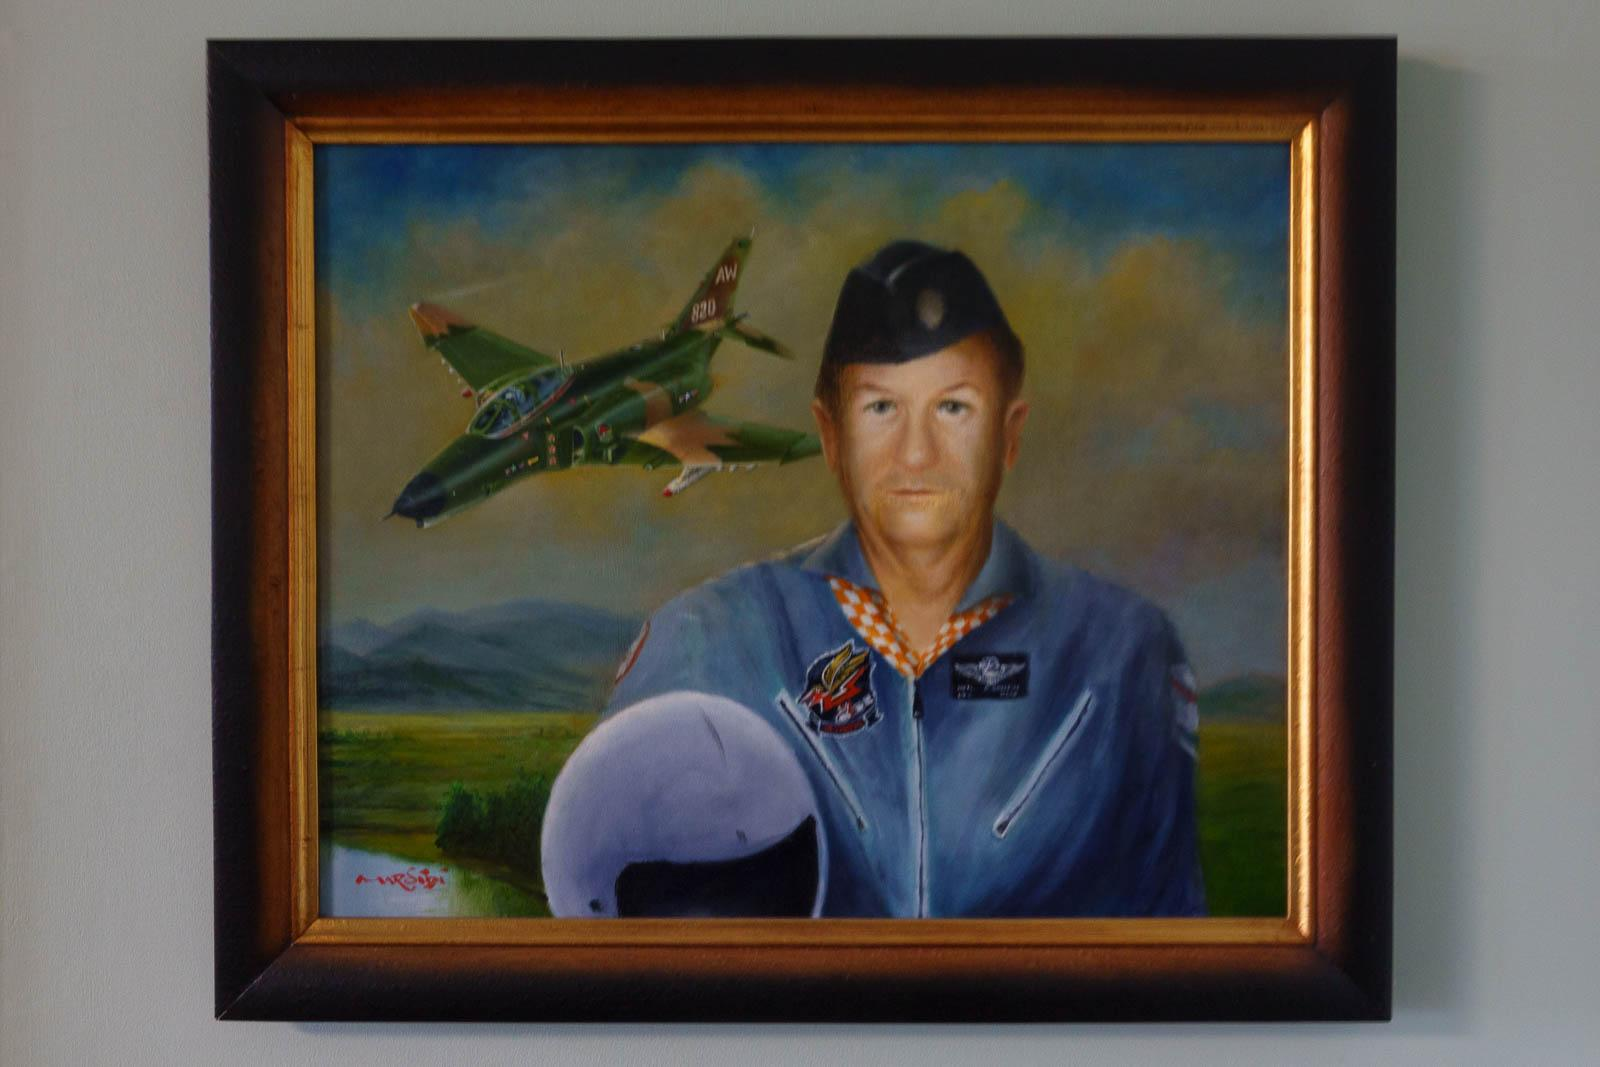 Painting by Mike Rinker honoring the local hero, Neil Griffin, Lt. Col. USAF